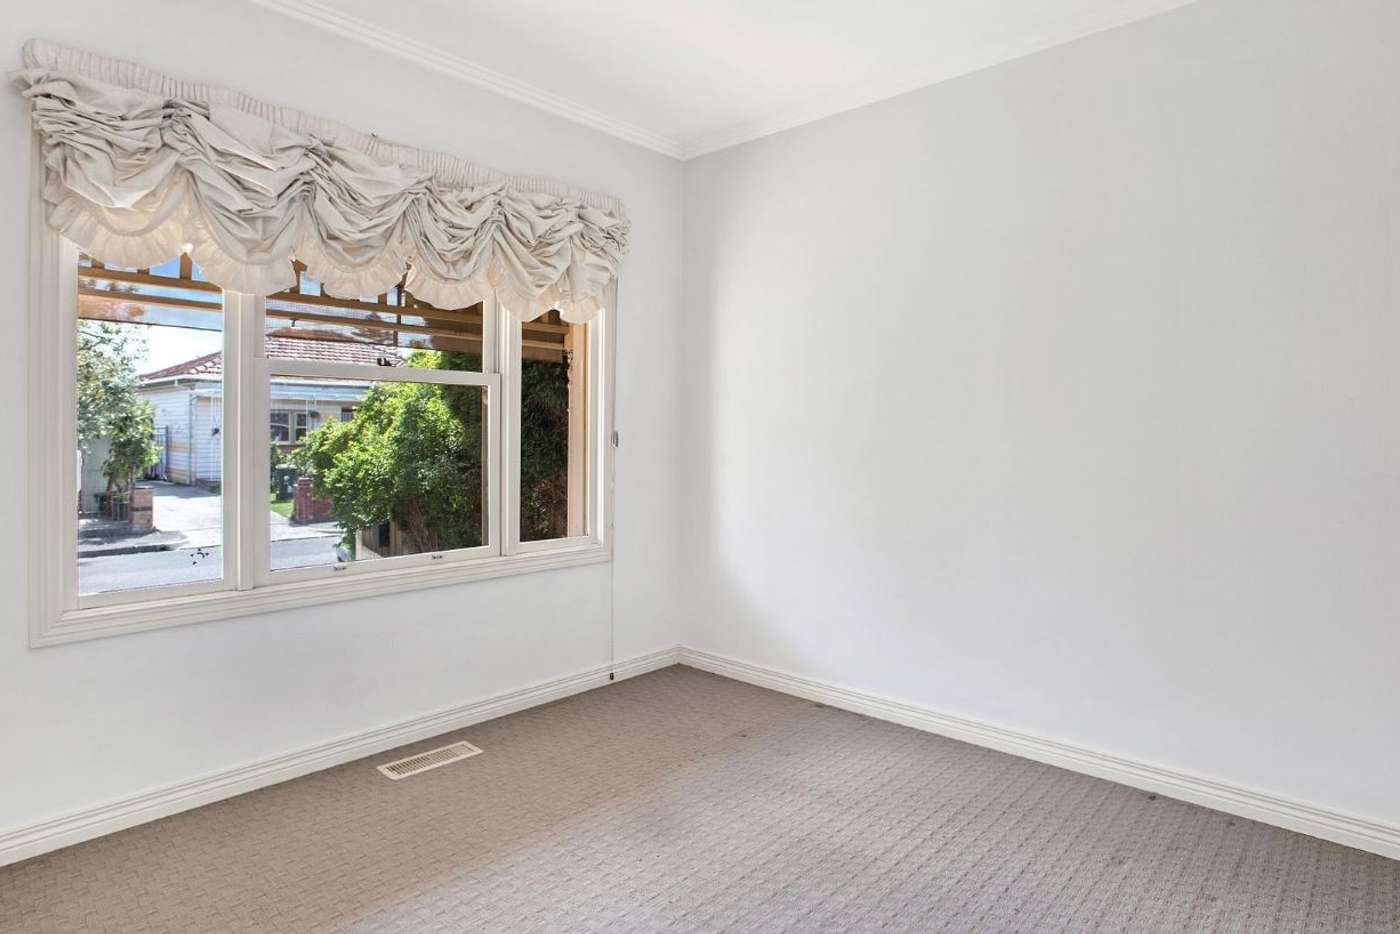 Fifth view of Homely house listing, 66A Evans Street, Brunswick VIC 3056